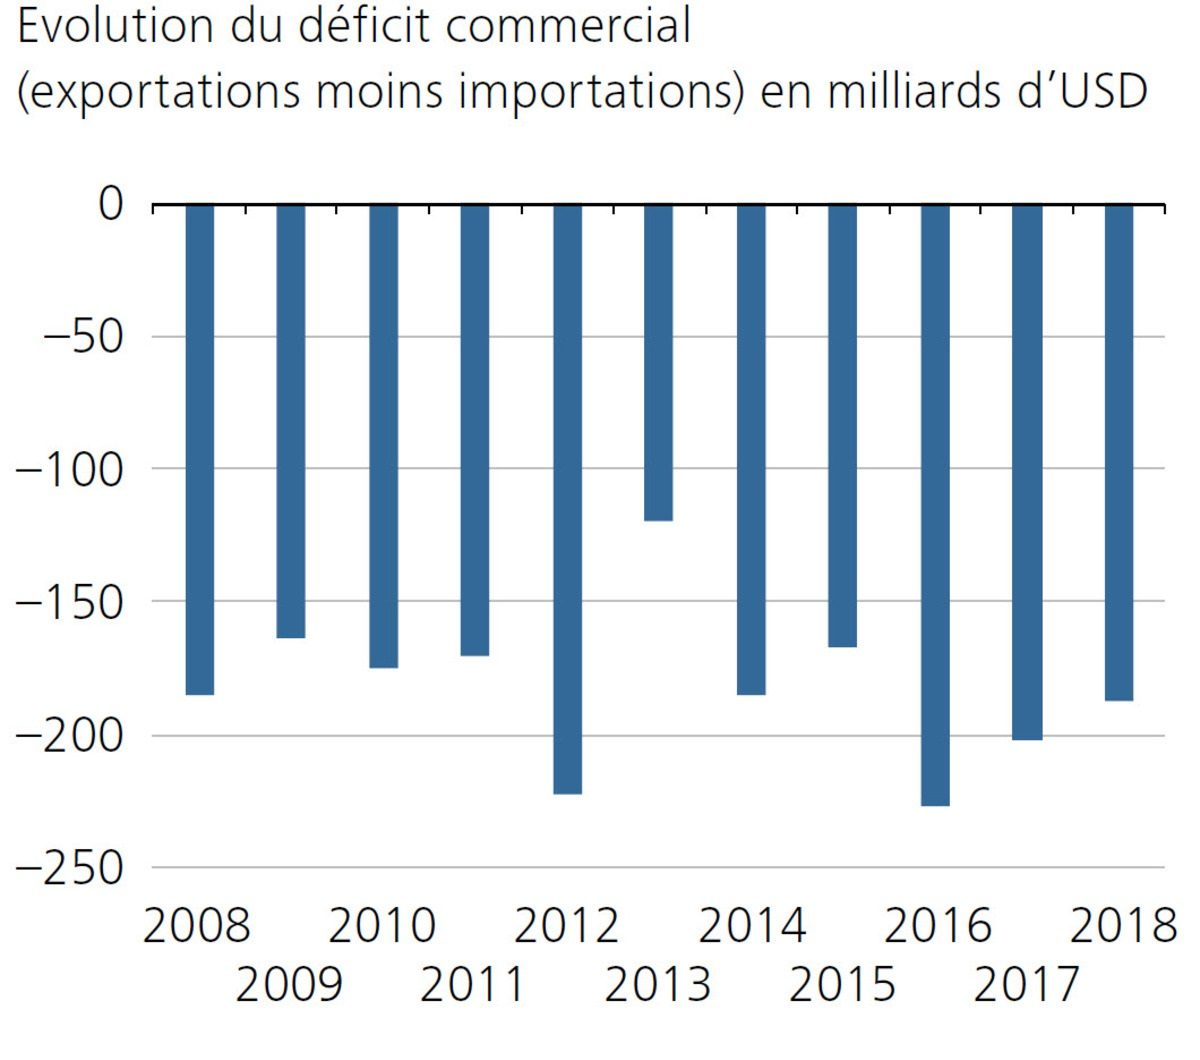 Evolution du déficit commercial (exportations moins importations) en milliards d'USD